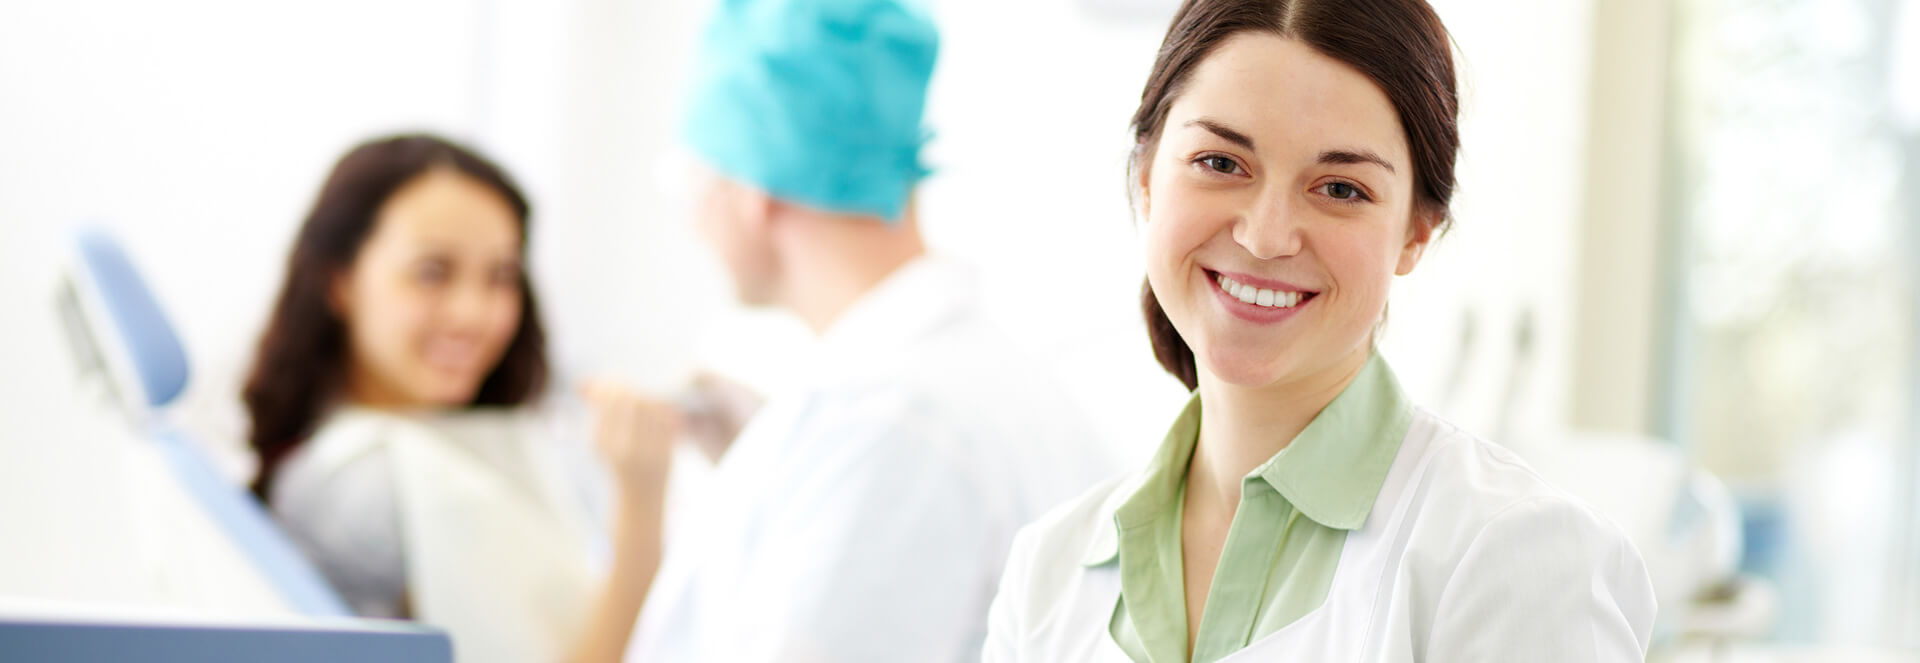 Dental assistant smiling at the camera while patient is receiving treatment